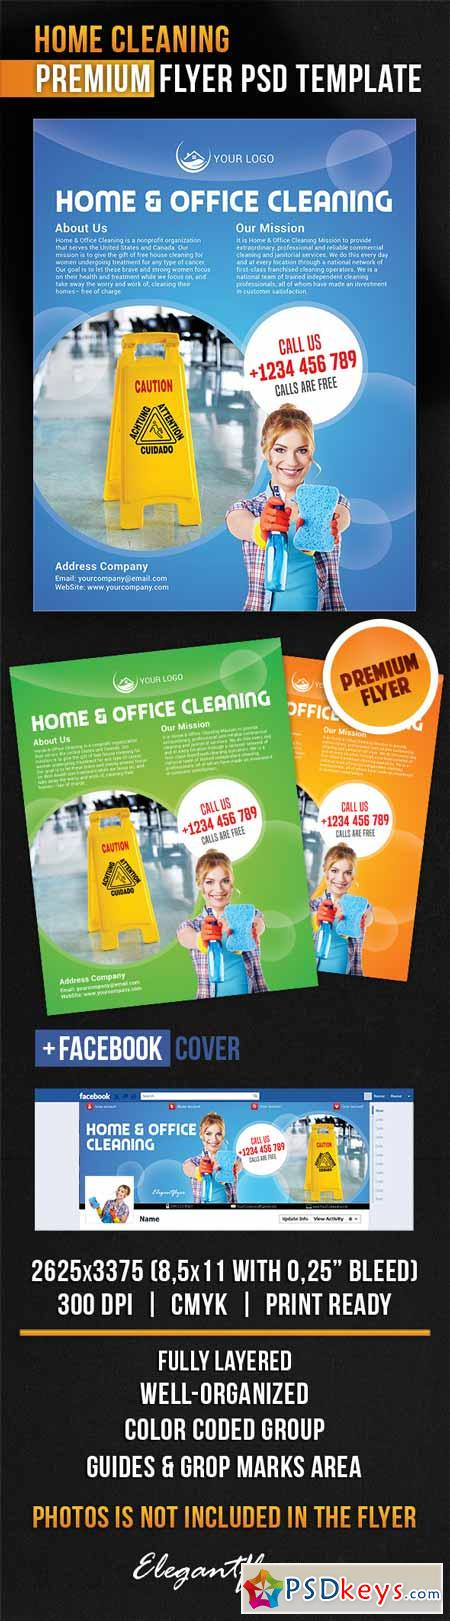 Home Cleaning Flyers Idealstalist